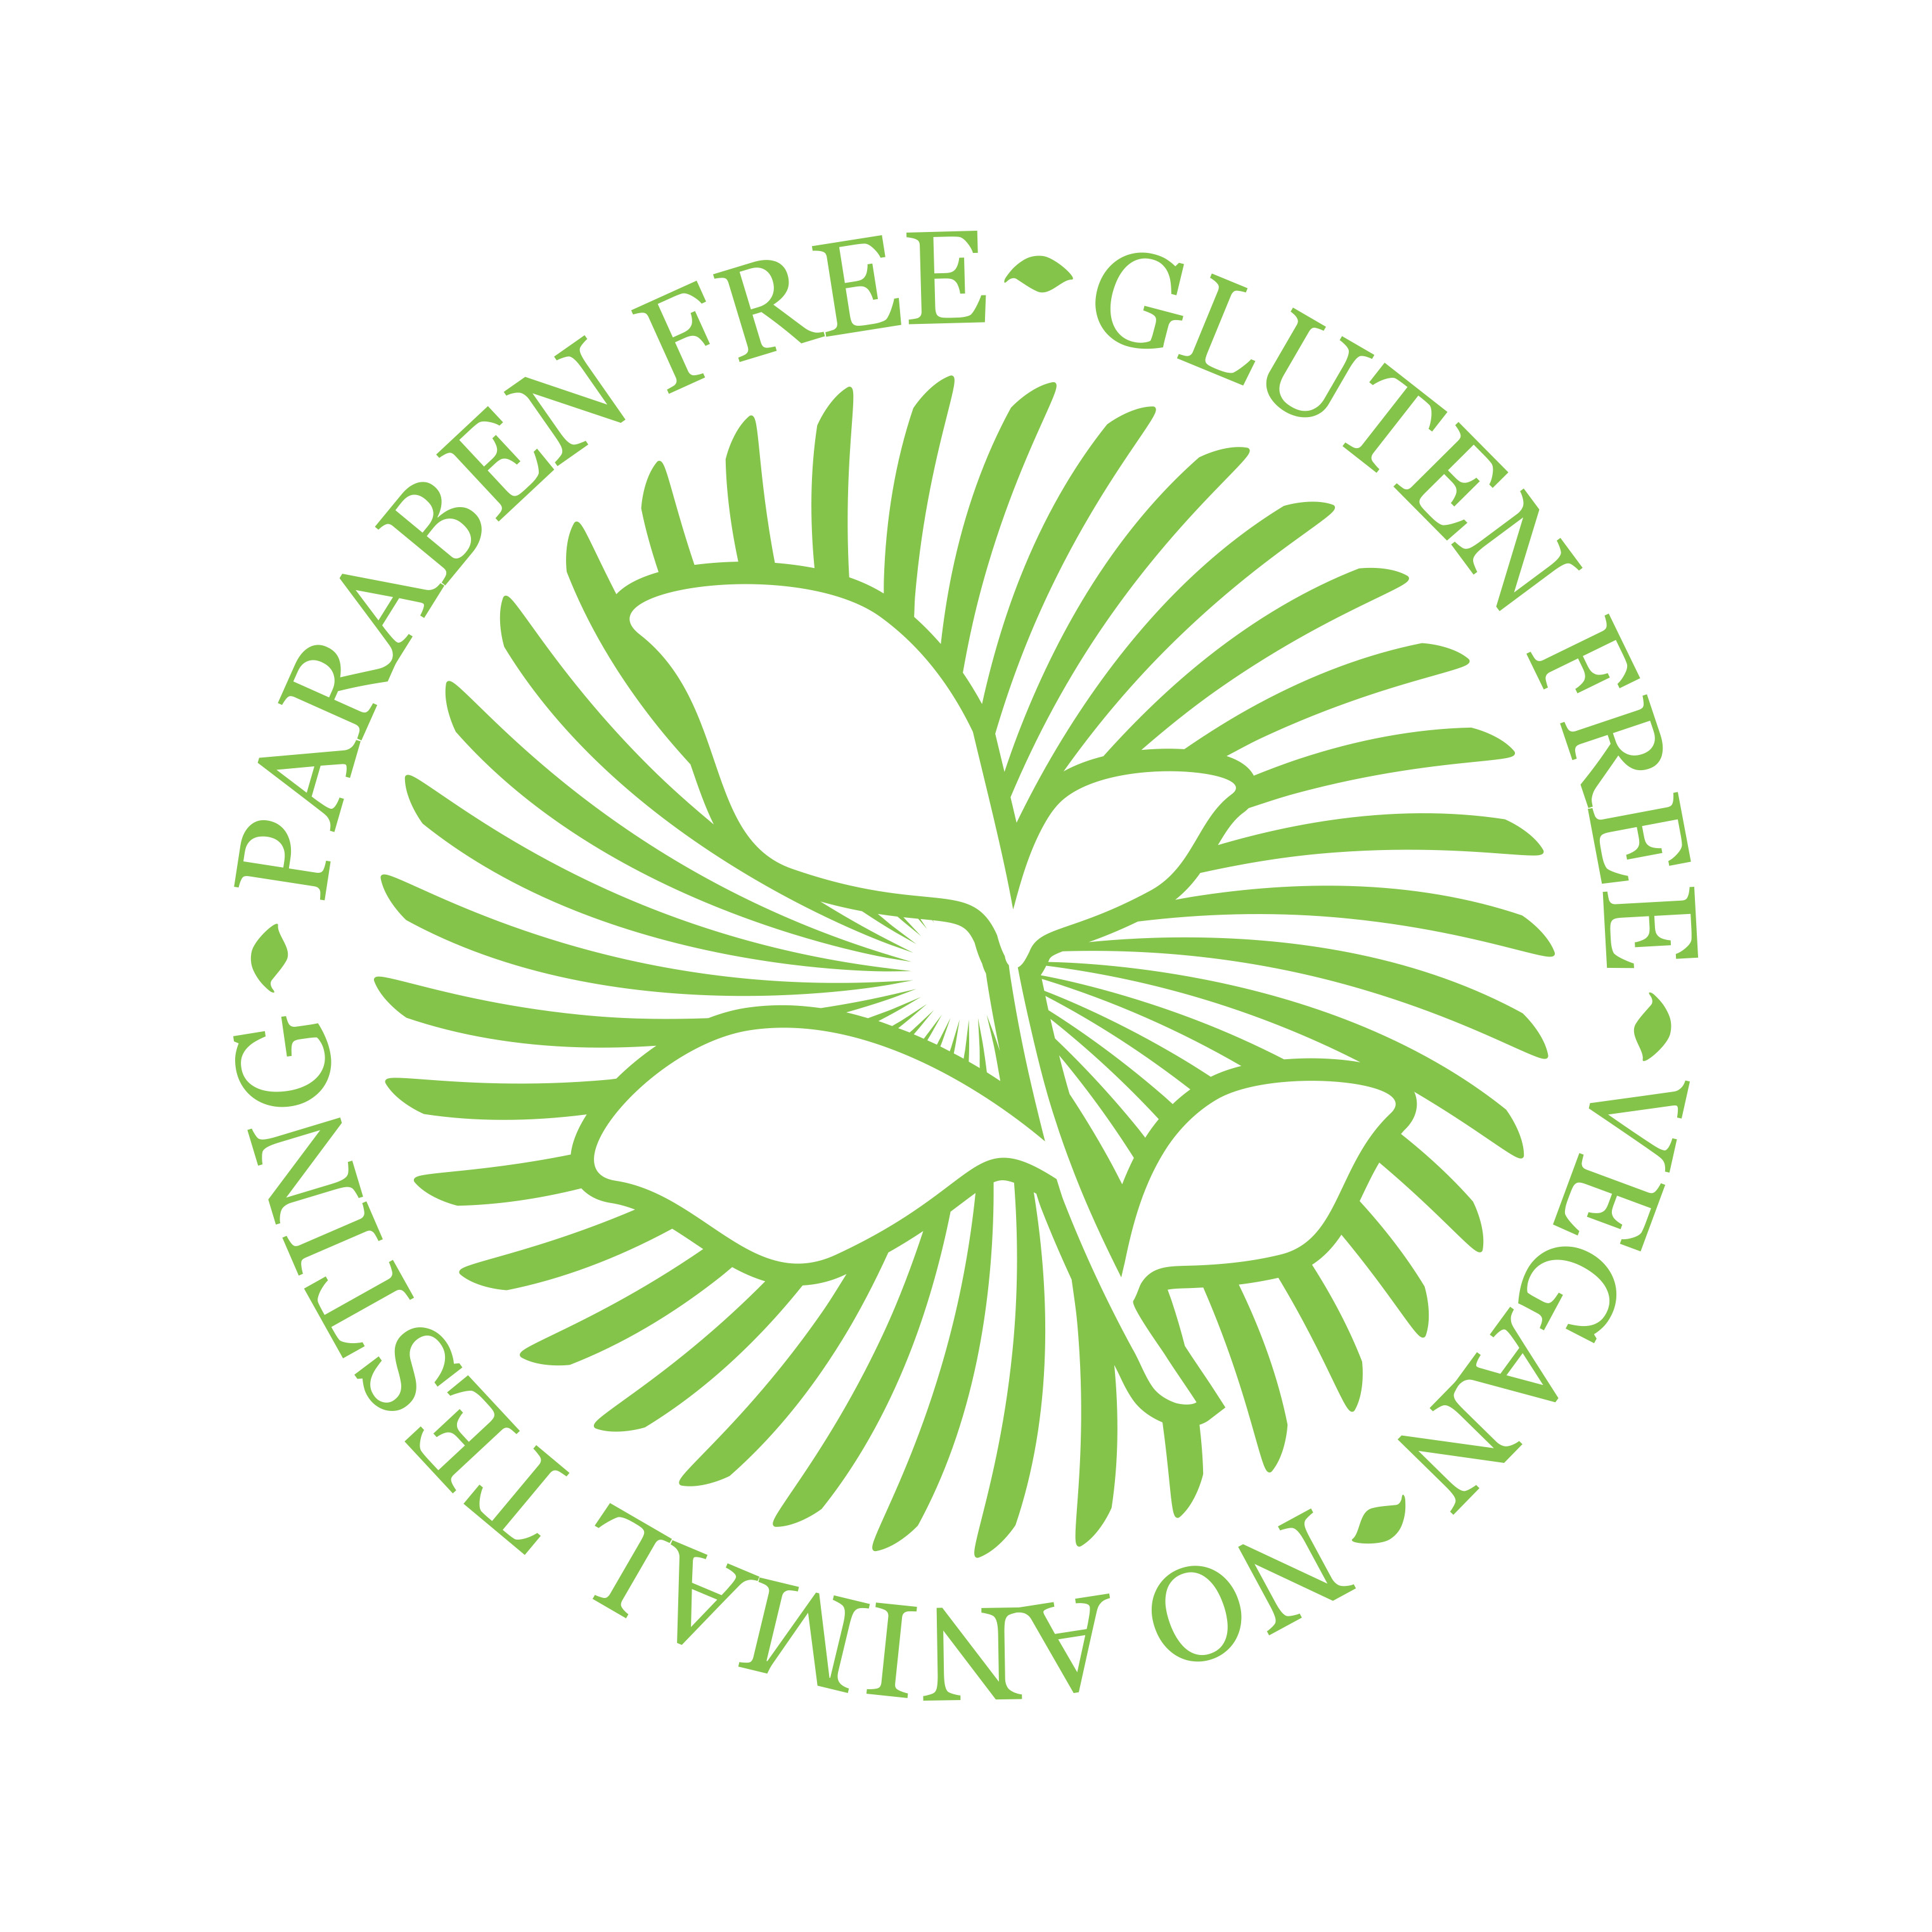 Products FREE of Gluten, Parabens, with no animal testing